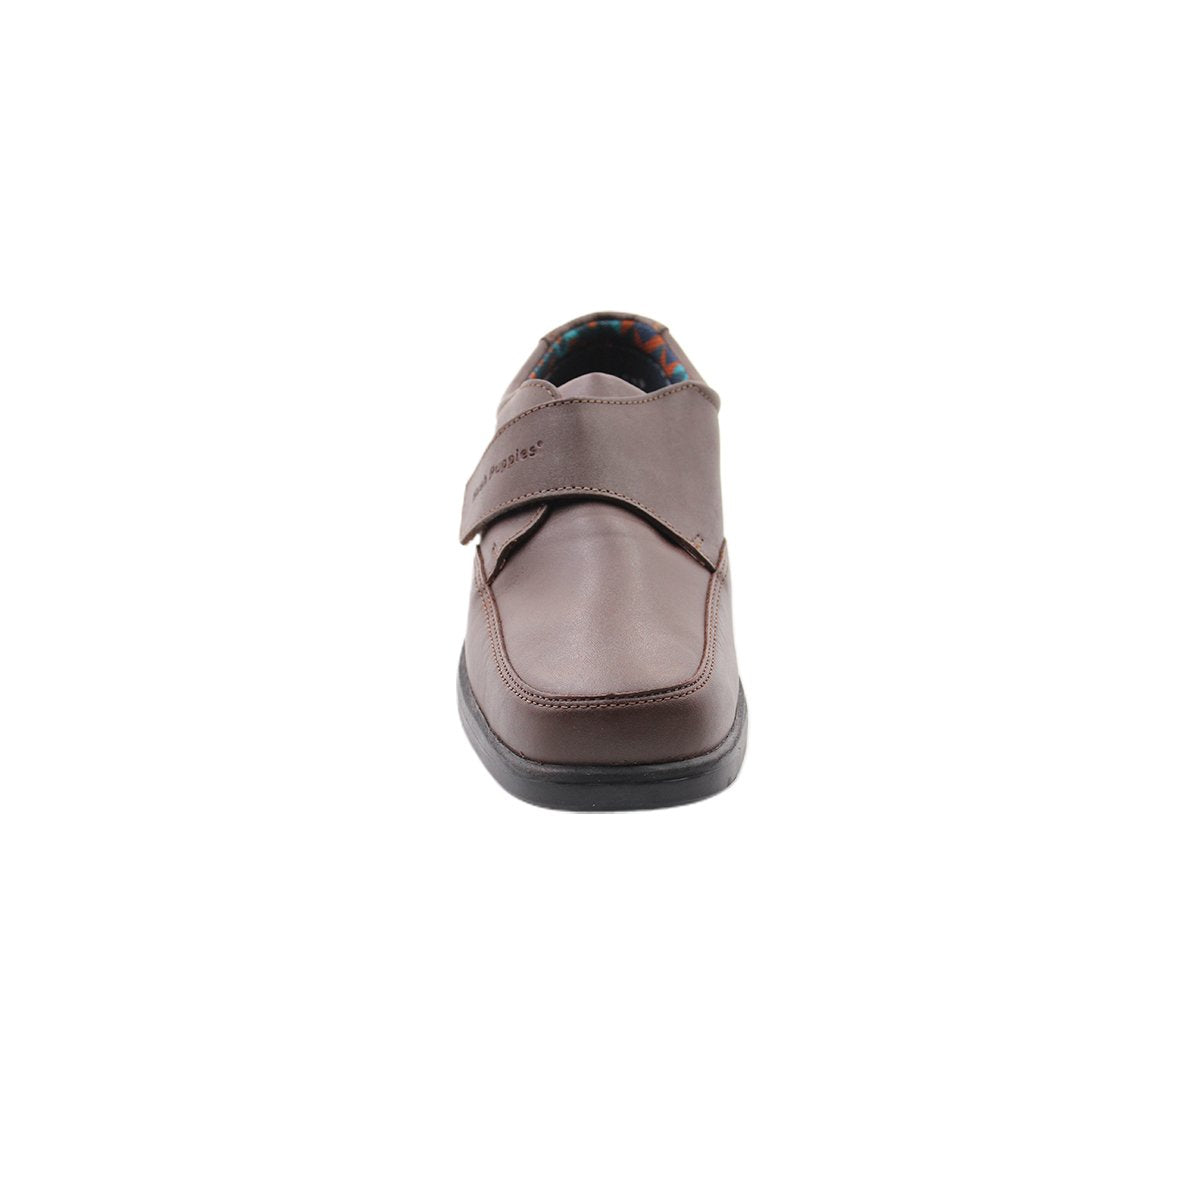 zapato escolar luka vel hp - cafe, 359.99, all day comfort, cafe, calzado, cuero, temporada 5, nino, ninos, precio regular, comprar, en linea, online, delivery, guatemala, zapatos, hush puppies